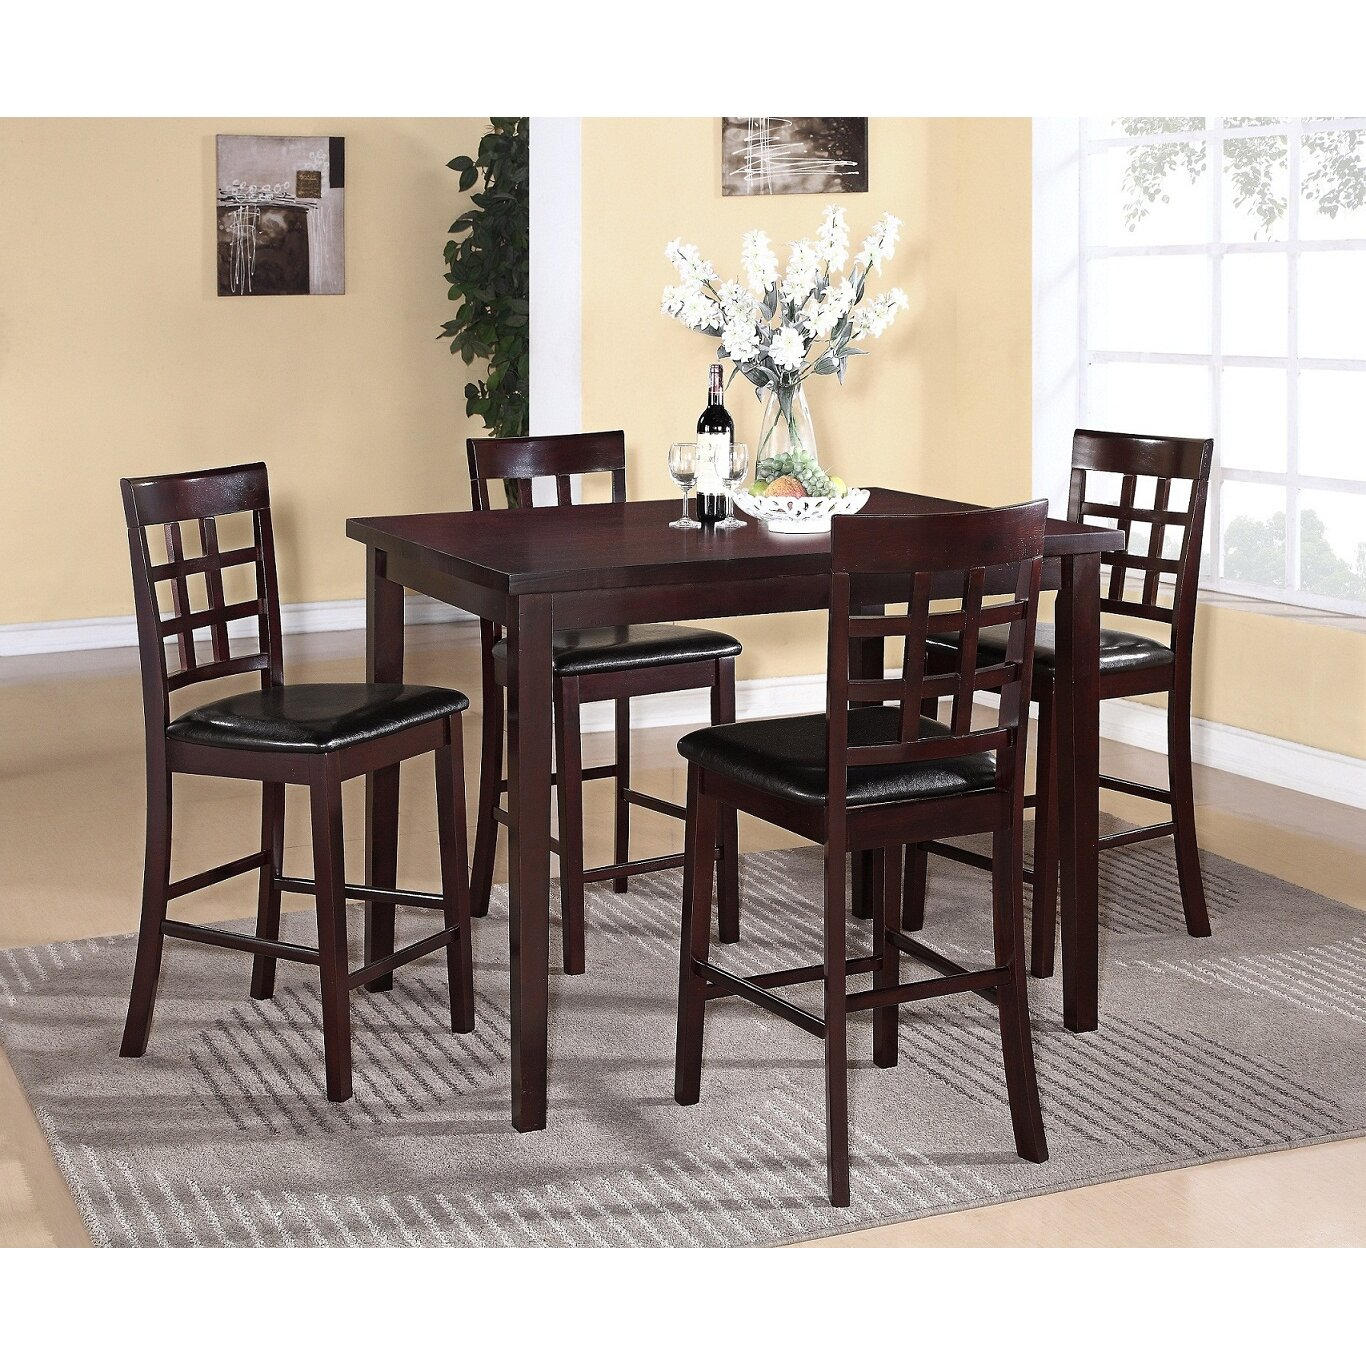 poka 5 piece rectangle solid wood counter height dining set